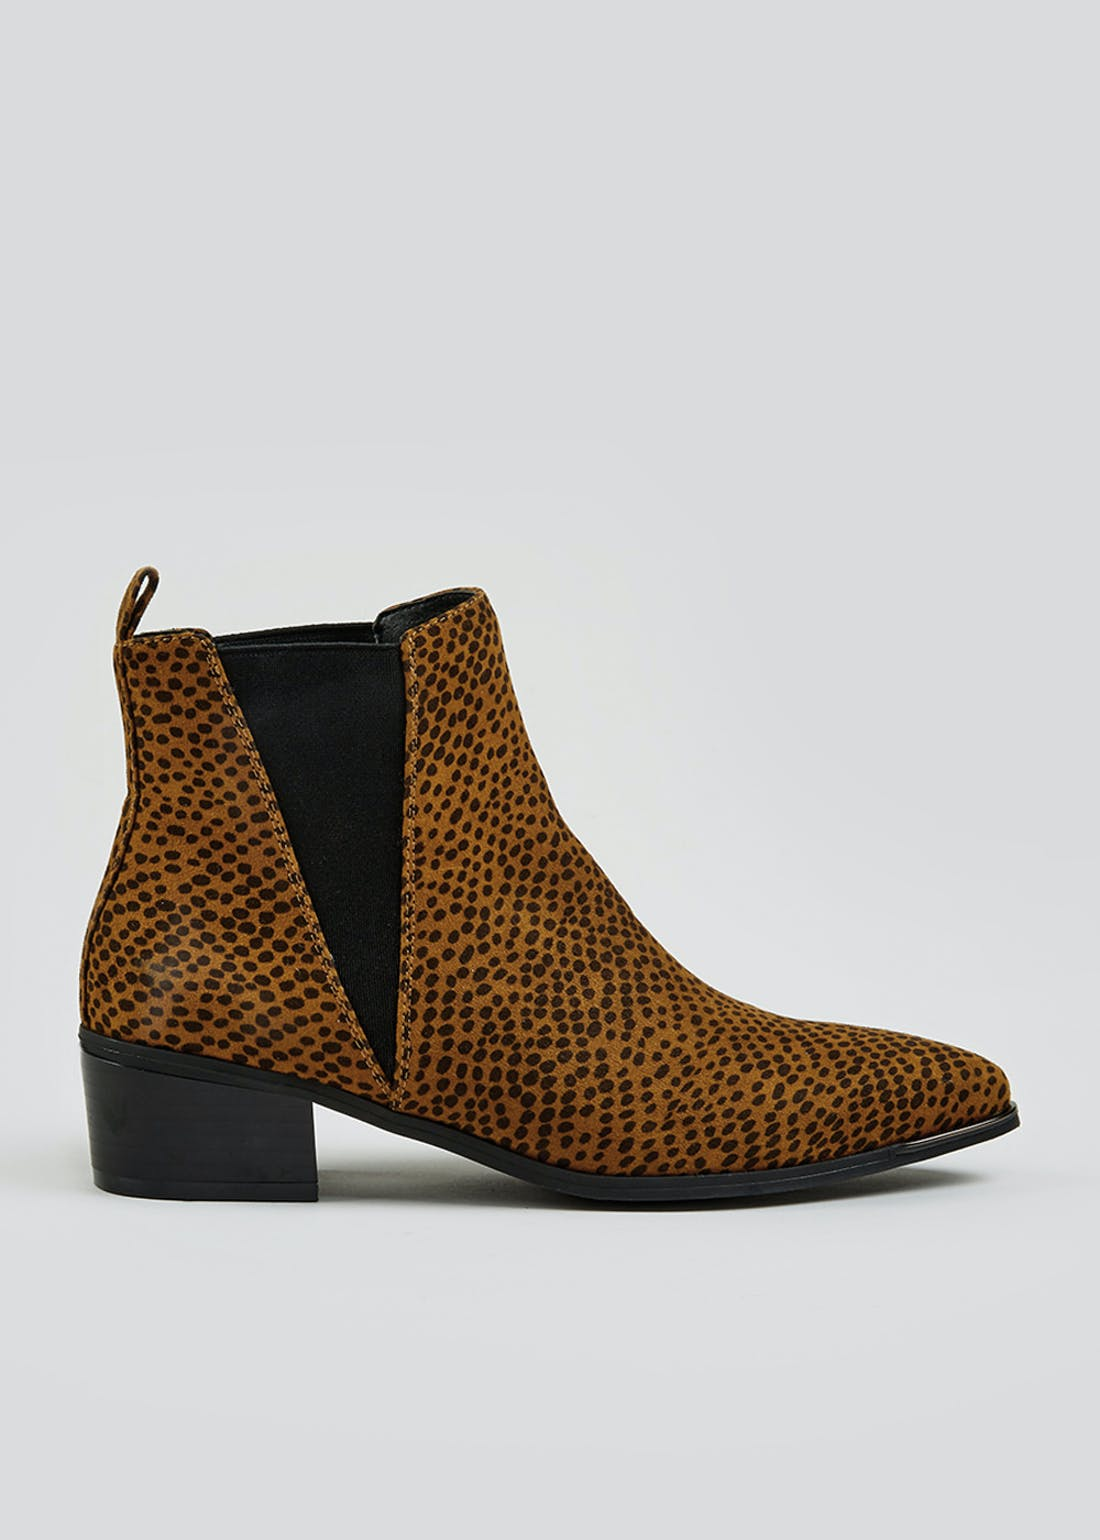 Leopard Print Pointed Boots